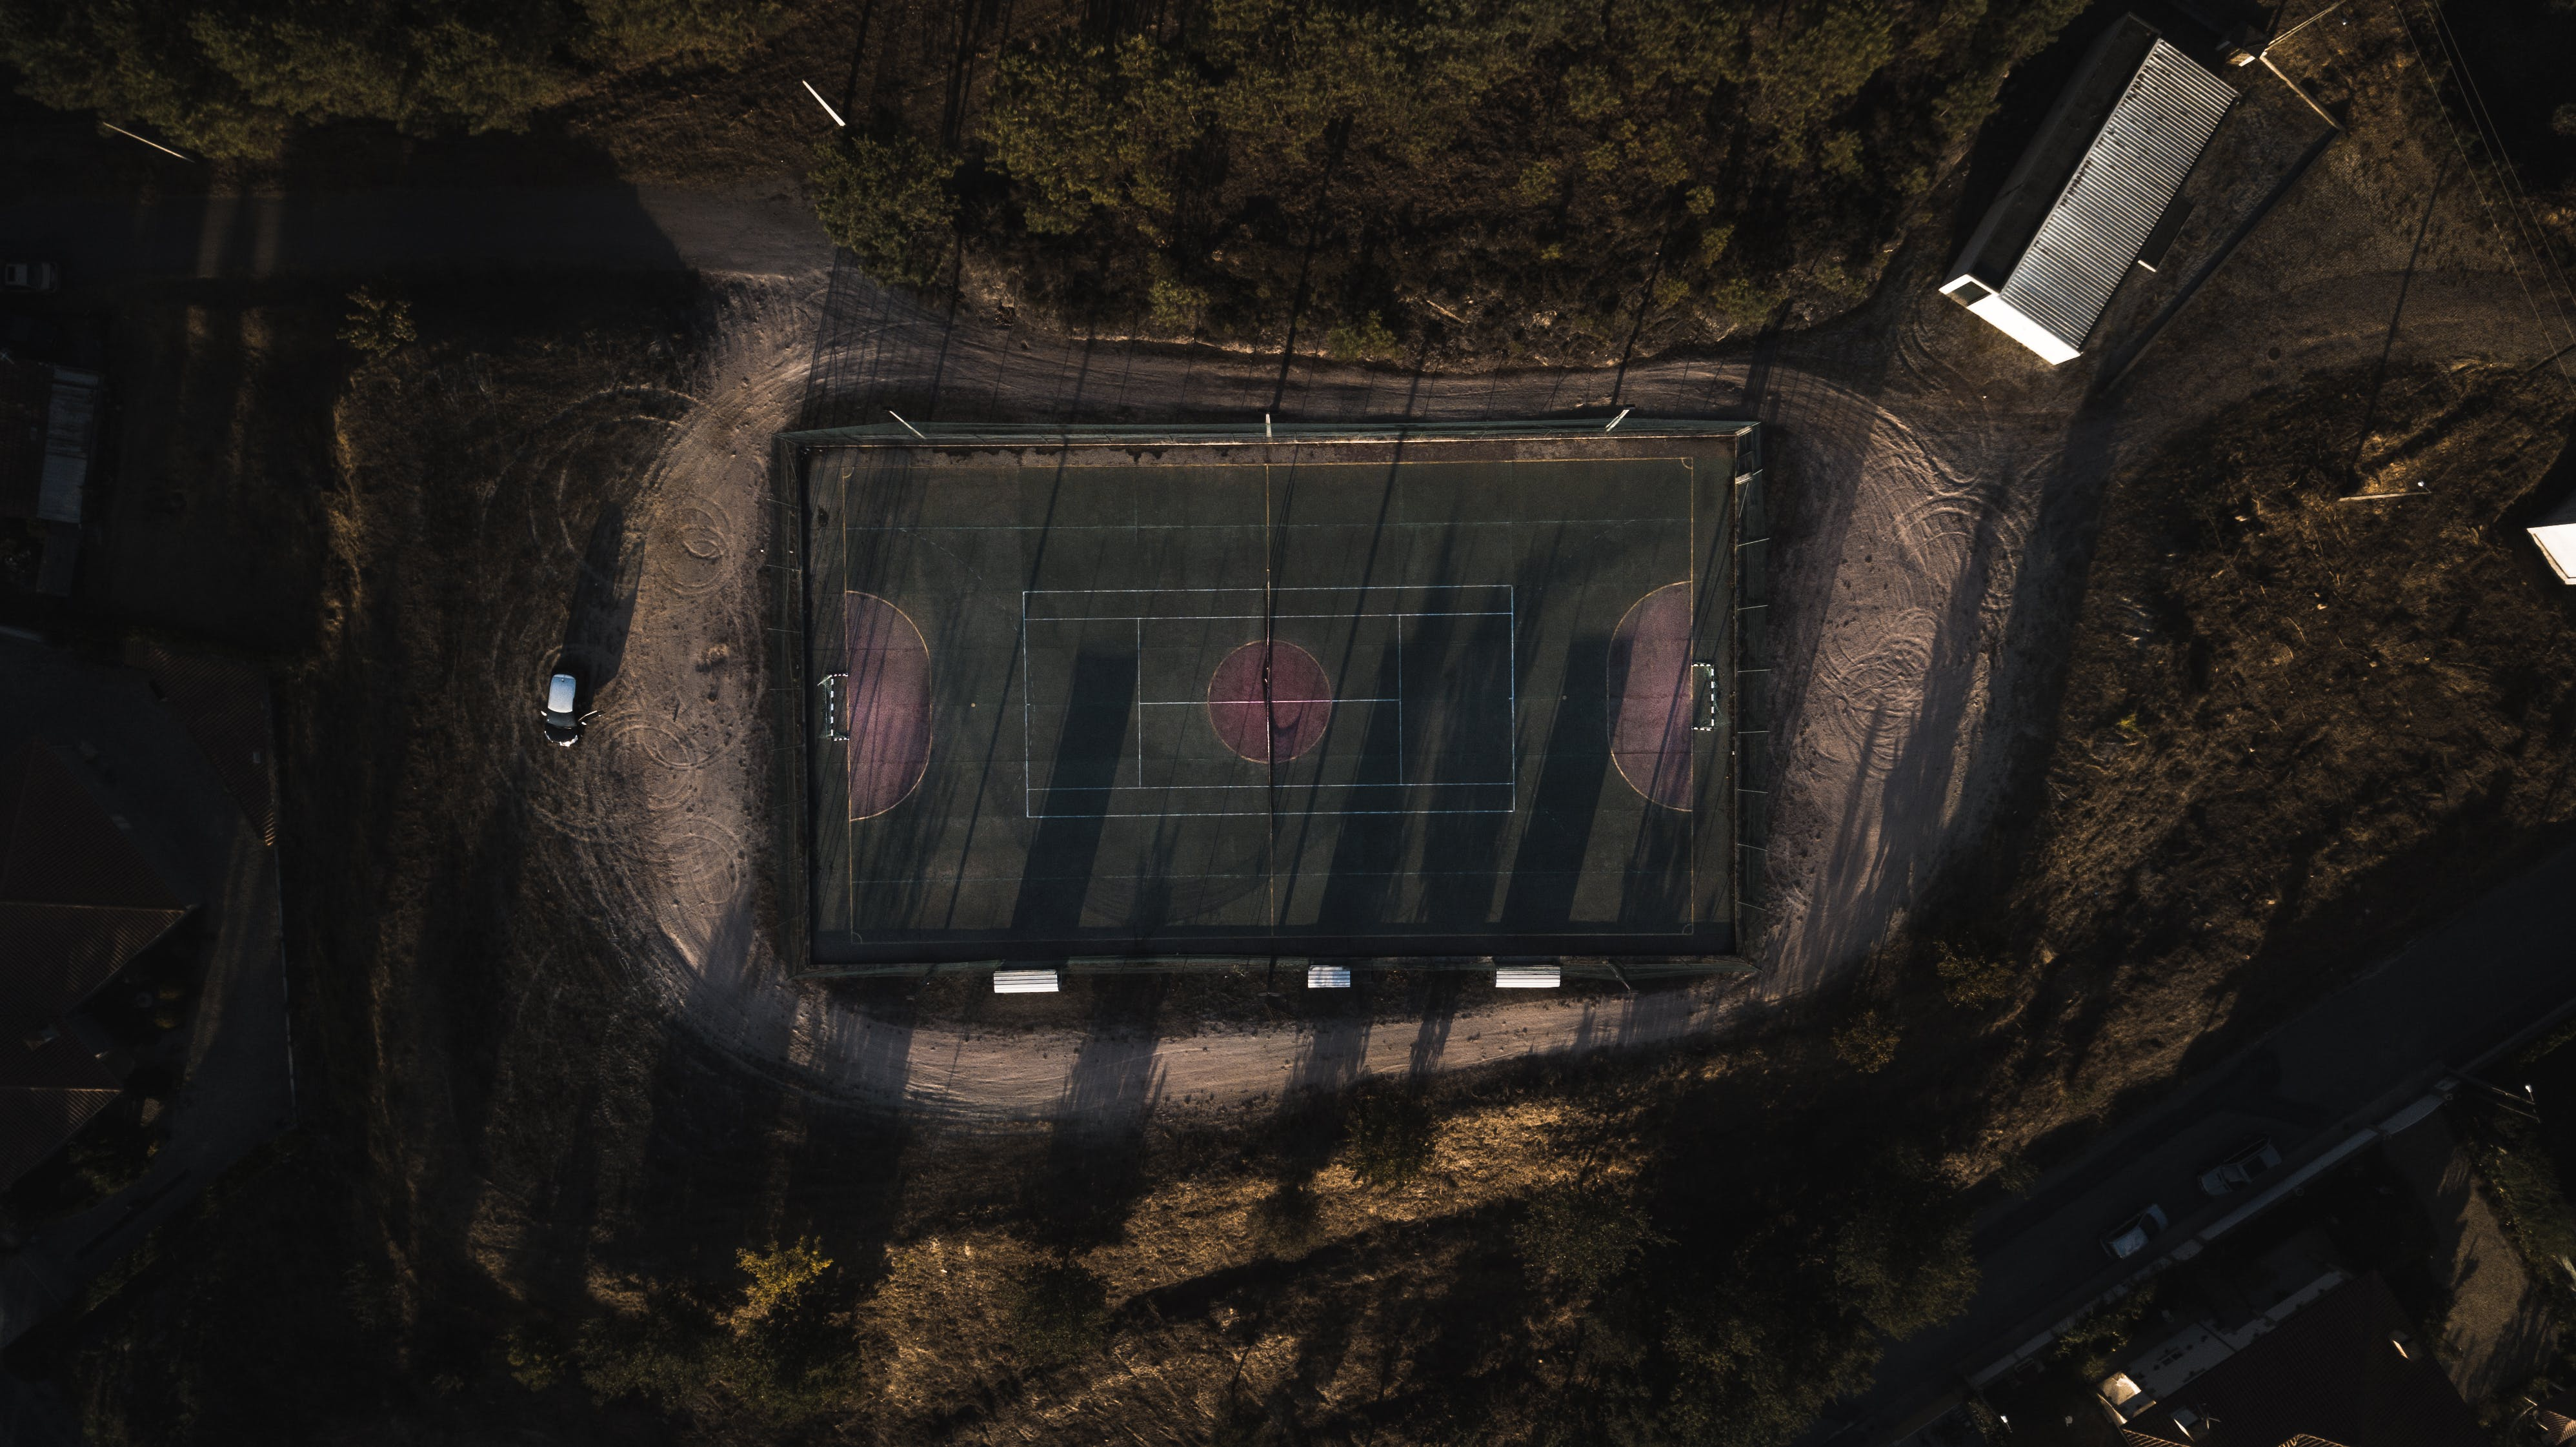 Aerial View of Badminton Court